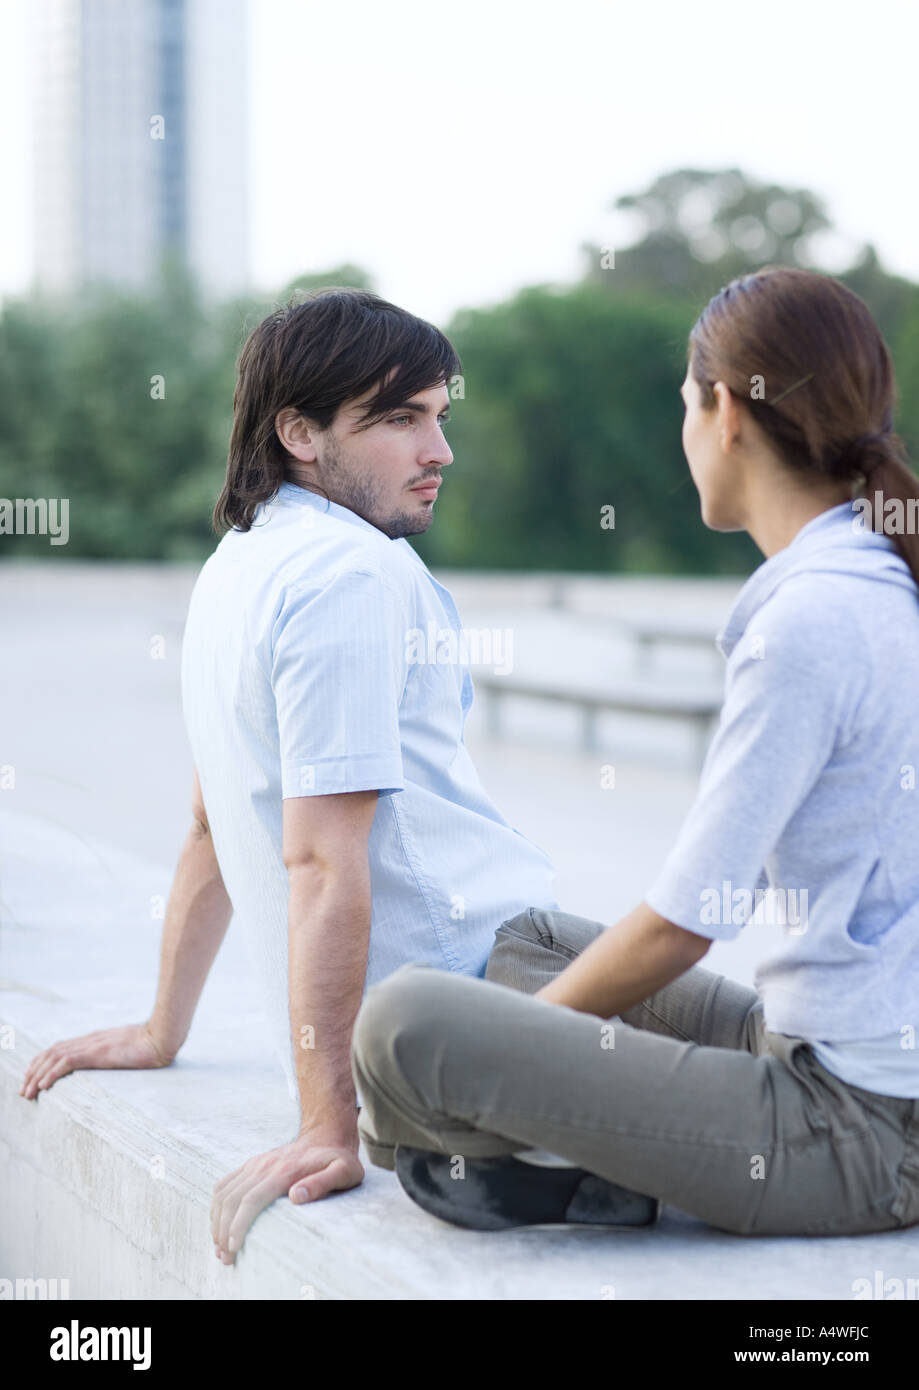 Young couple sitting in urban park - Stock Image